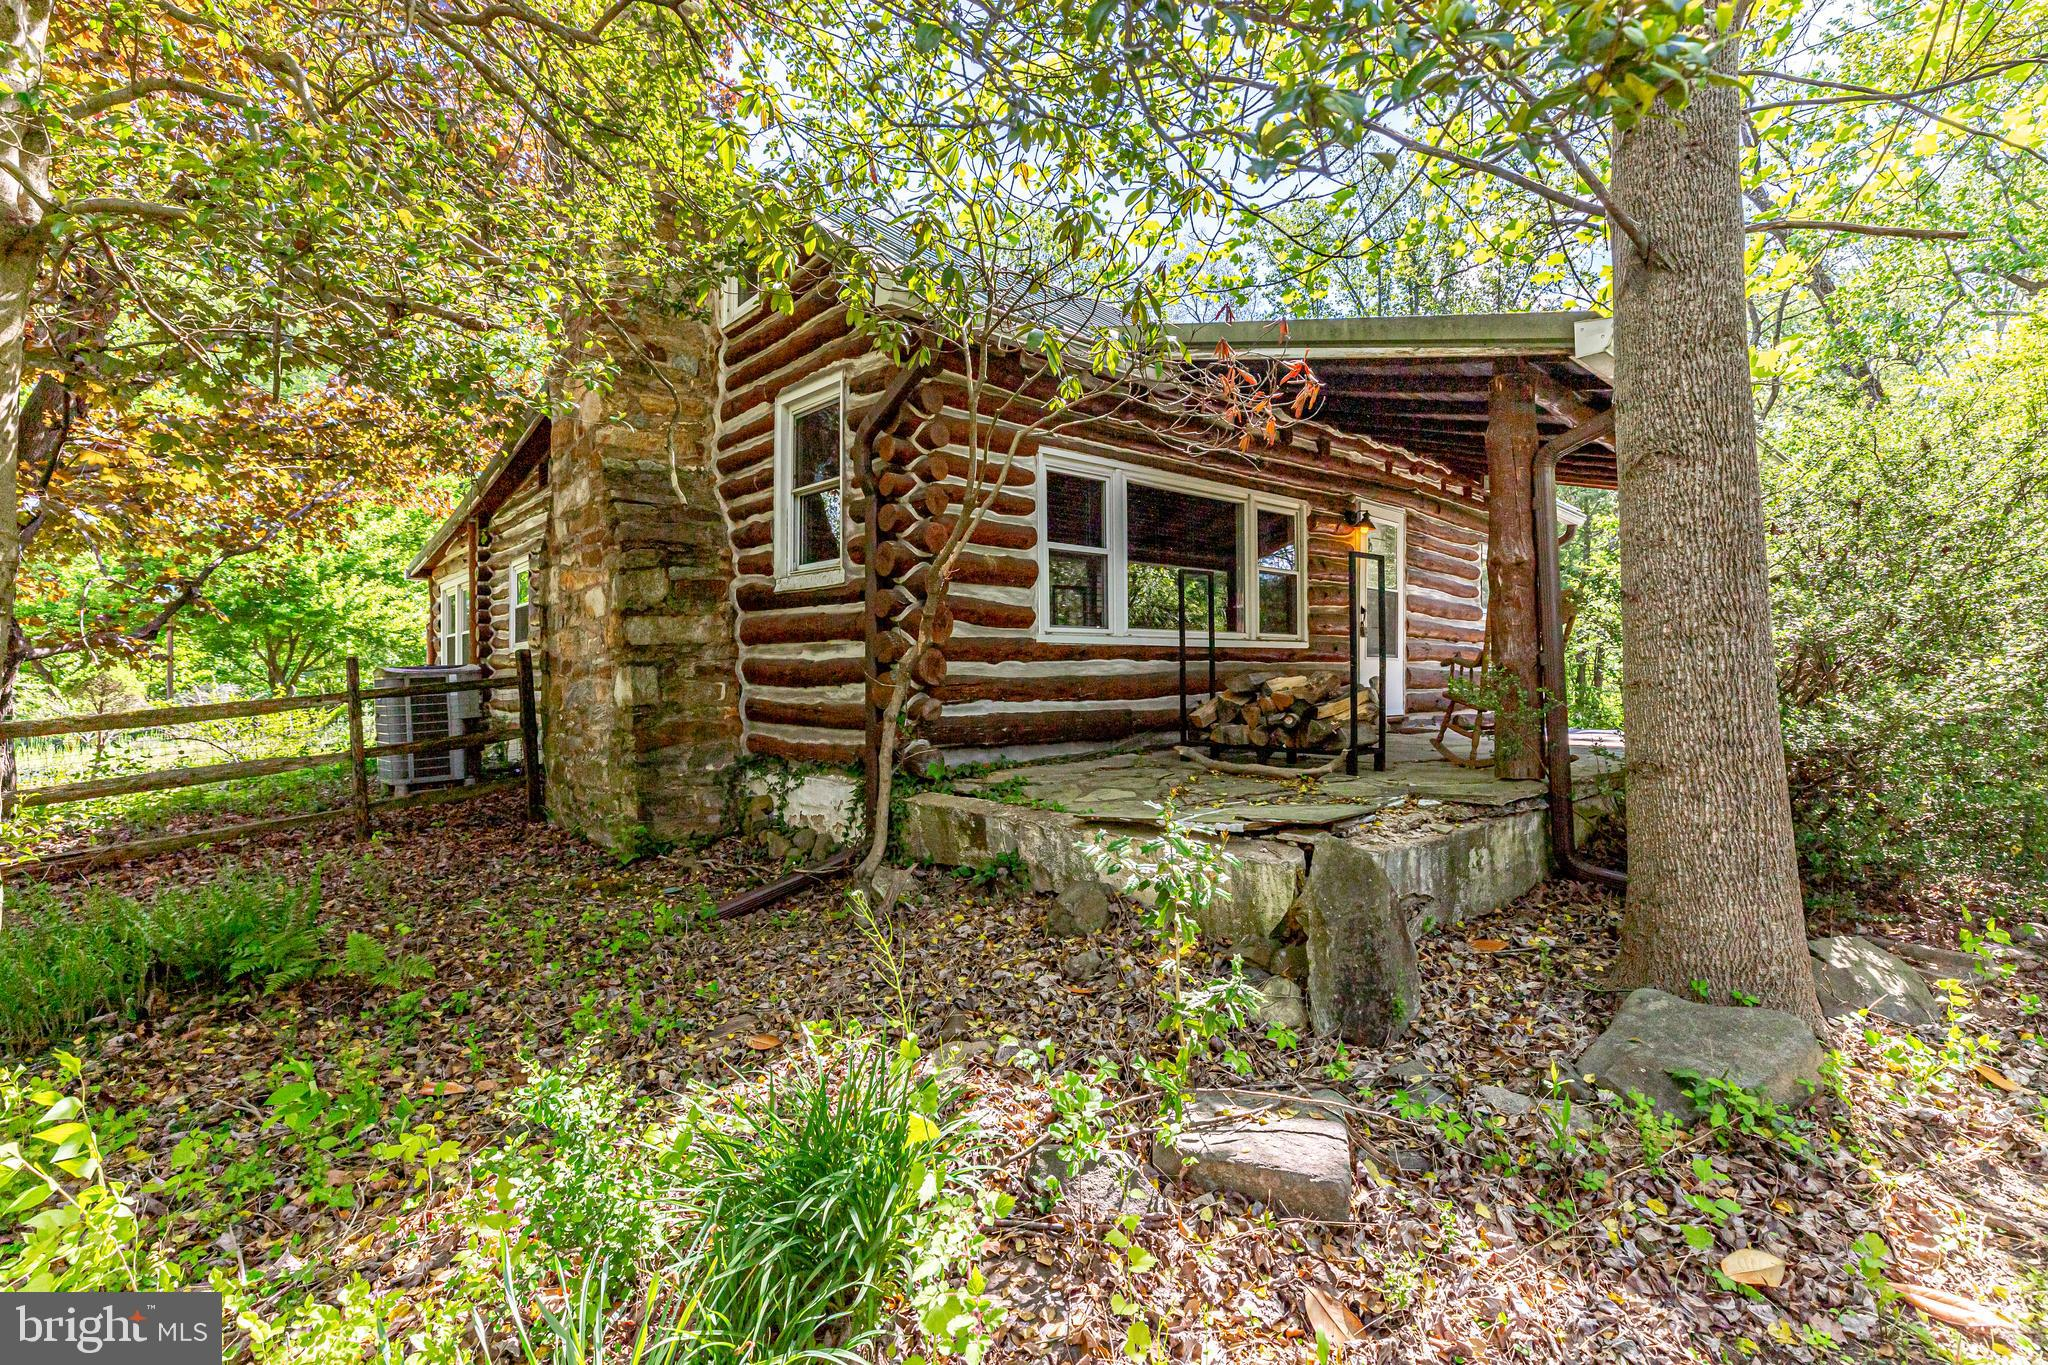 Looking for that special unique property?  This 1936 built log home sitting on nearly 5 acres along the banks of the Oocoquan River might just be the one for you.   Sitting high above Dumfries road come home to your one country retreat at the end of a long day.  This home will take you back.  The great room features a stone woodburning fireplace and opens to the loft area above.  Rustic wood flooring in main living area.  A separate DR and kitchen with table space.  Enjoy watching the various wildlife and the changing of the seasons from the Sun/Florida room.  There is a bedroom on the main level along with two full baths plus a second bedroom or home office on the upper level.  Listen to the rain hitting the tin roof.  Something calming about that.  Lots of flower beds and acres of woods to explore.  The property ends up along the banks of the River.  And all of this just a few miles to Libera with all the shopping and restaurants a person could wish for.